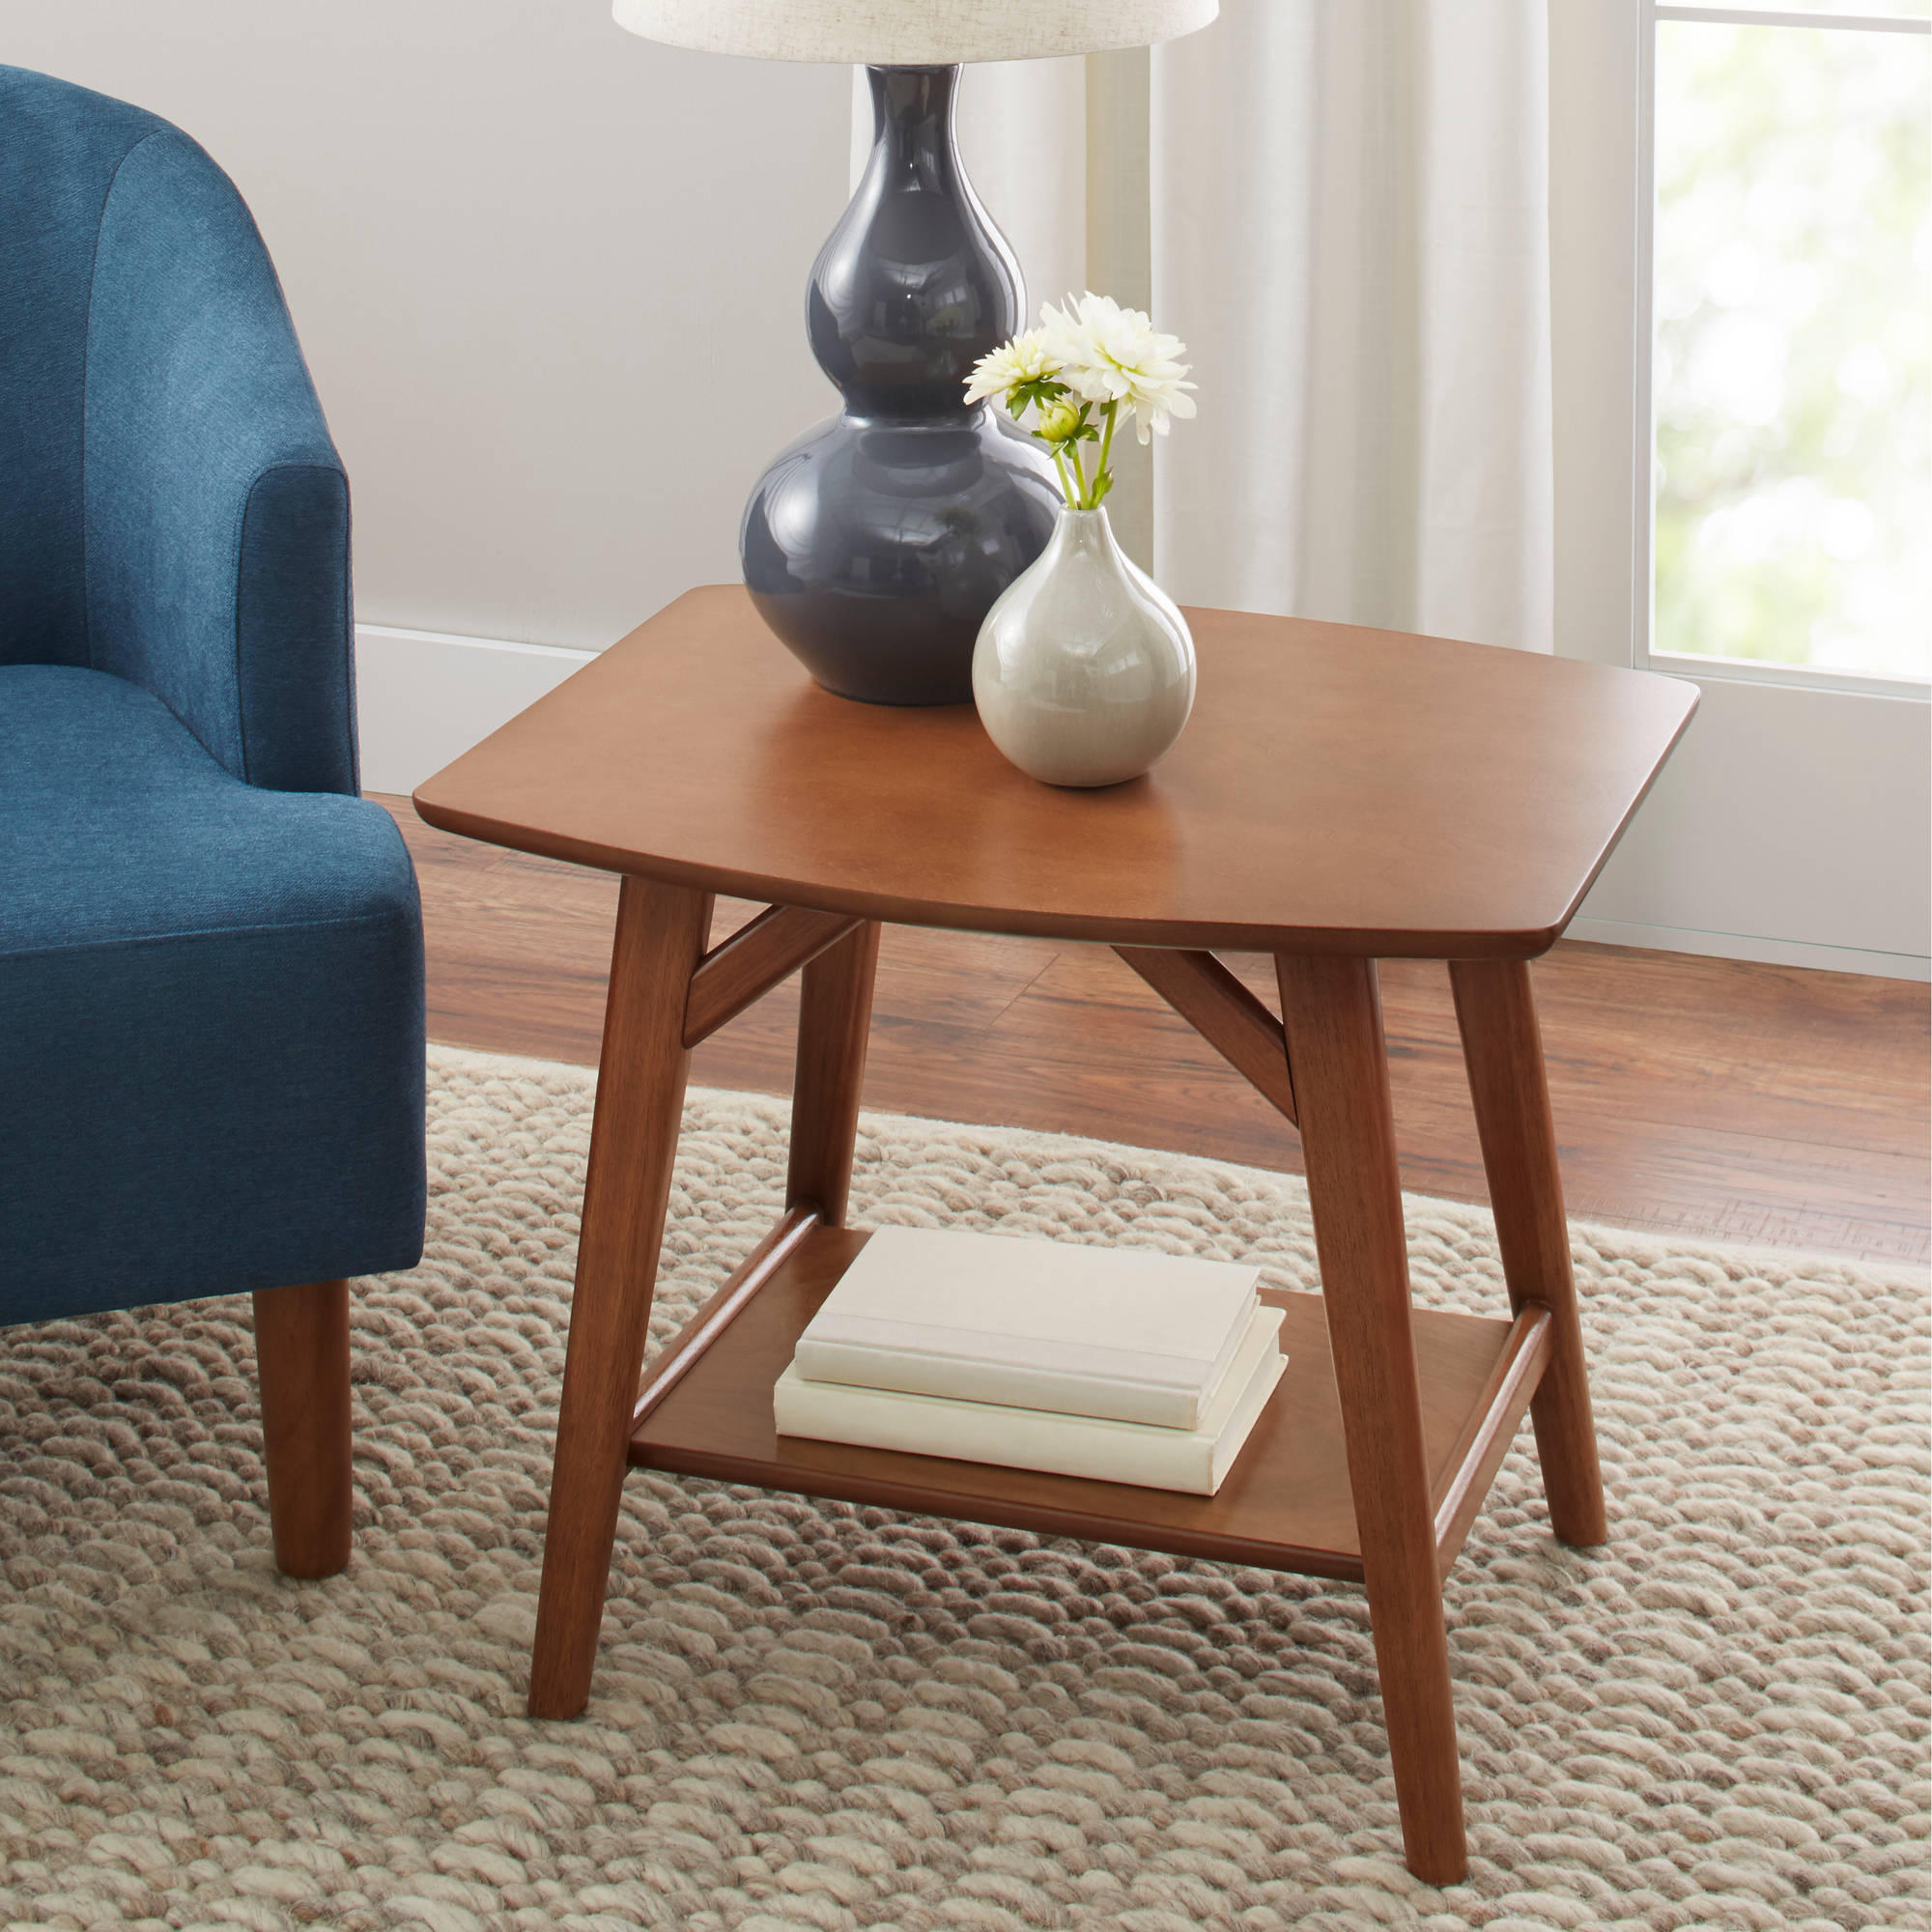 Better Homes Gardens Reed Mid Century Modern Side Table Pecan